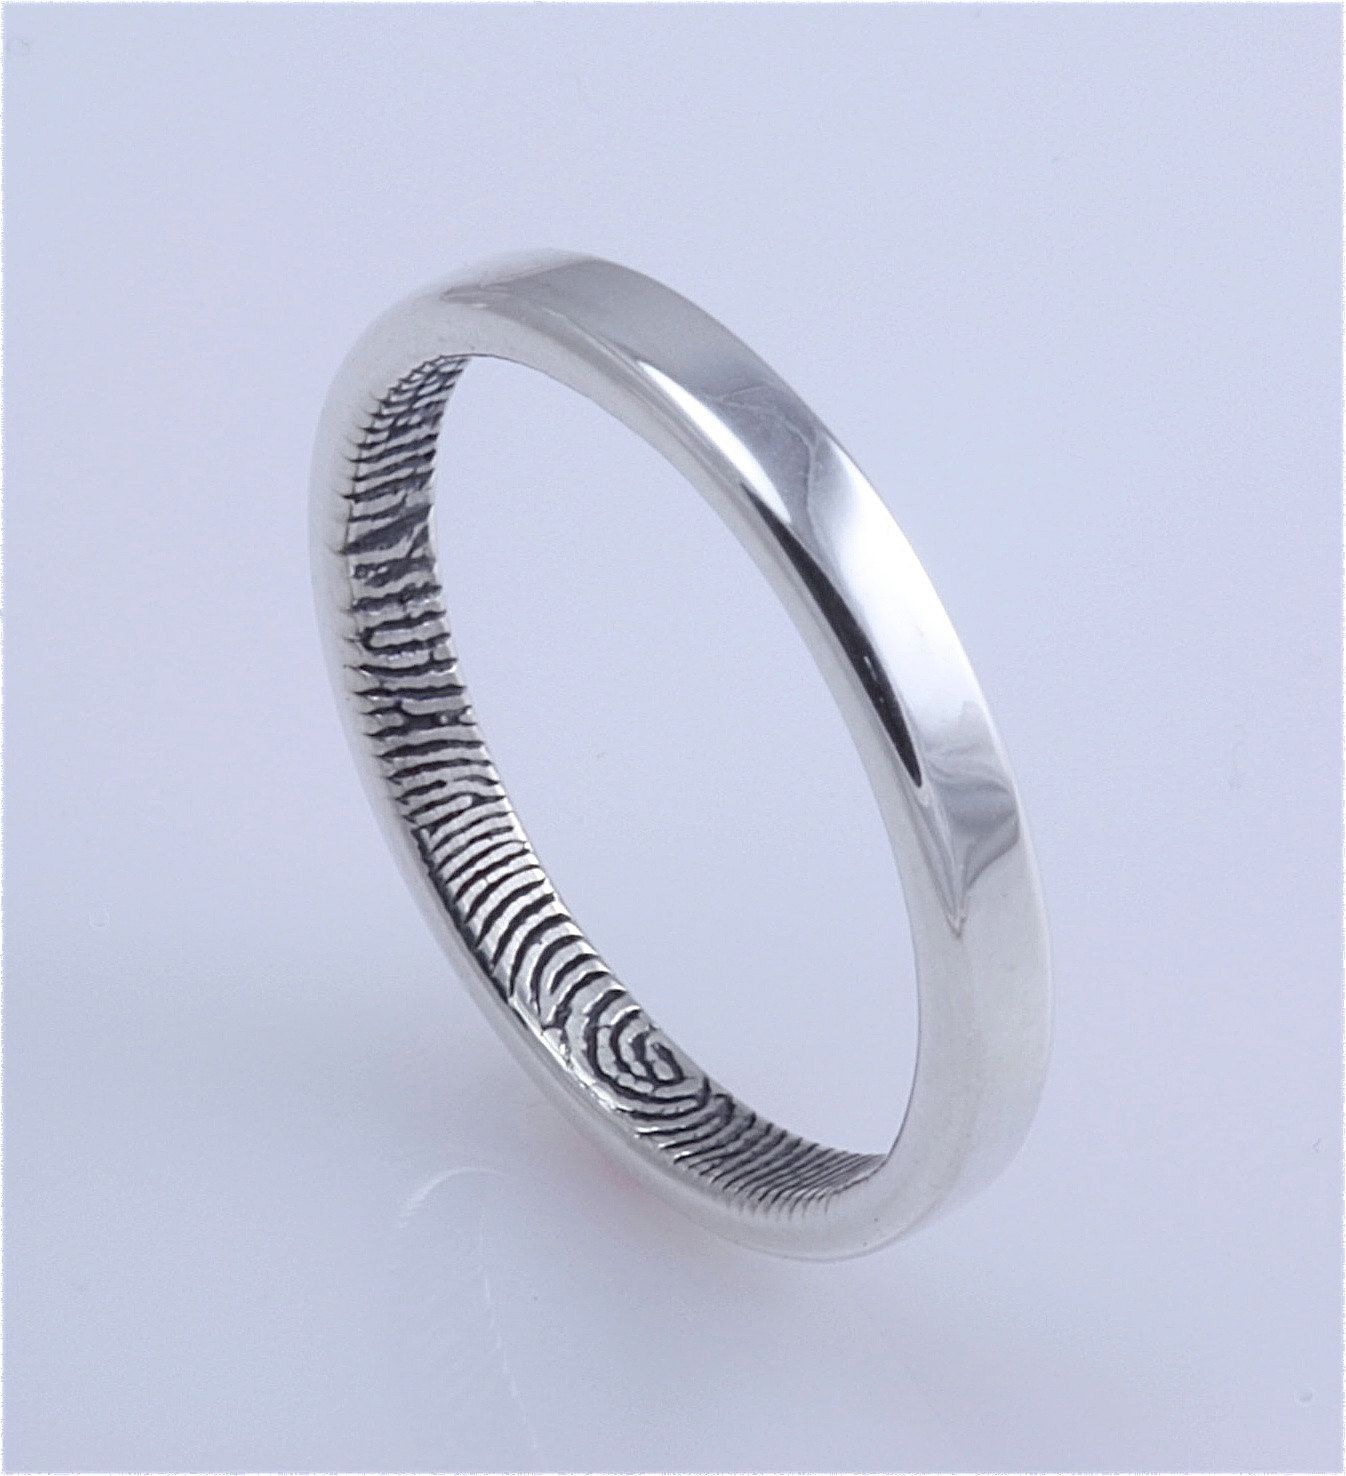 rings tags photo fingerprint gallery attachment inside wedding ring finger viewing sets with engagement bands print of